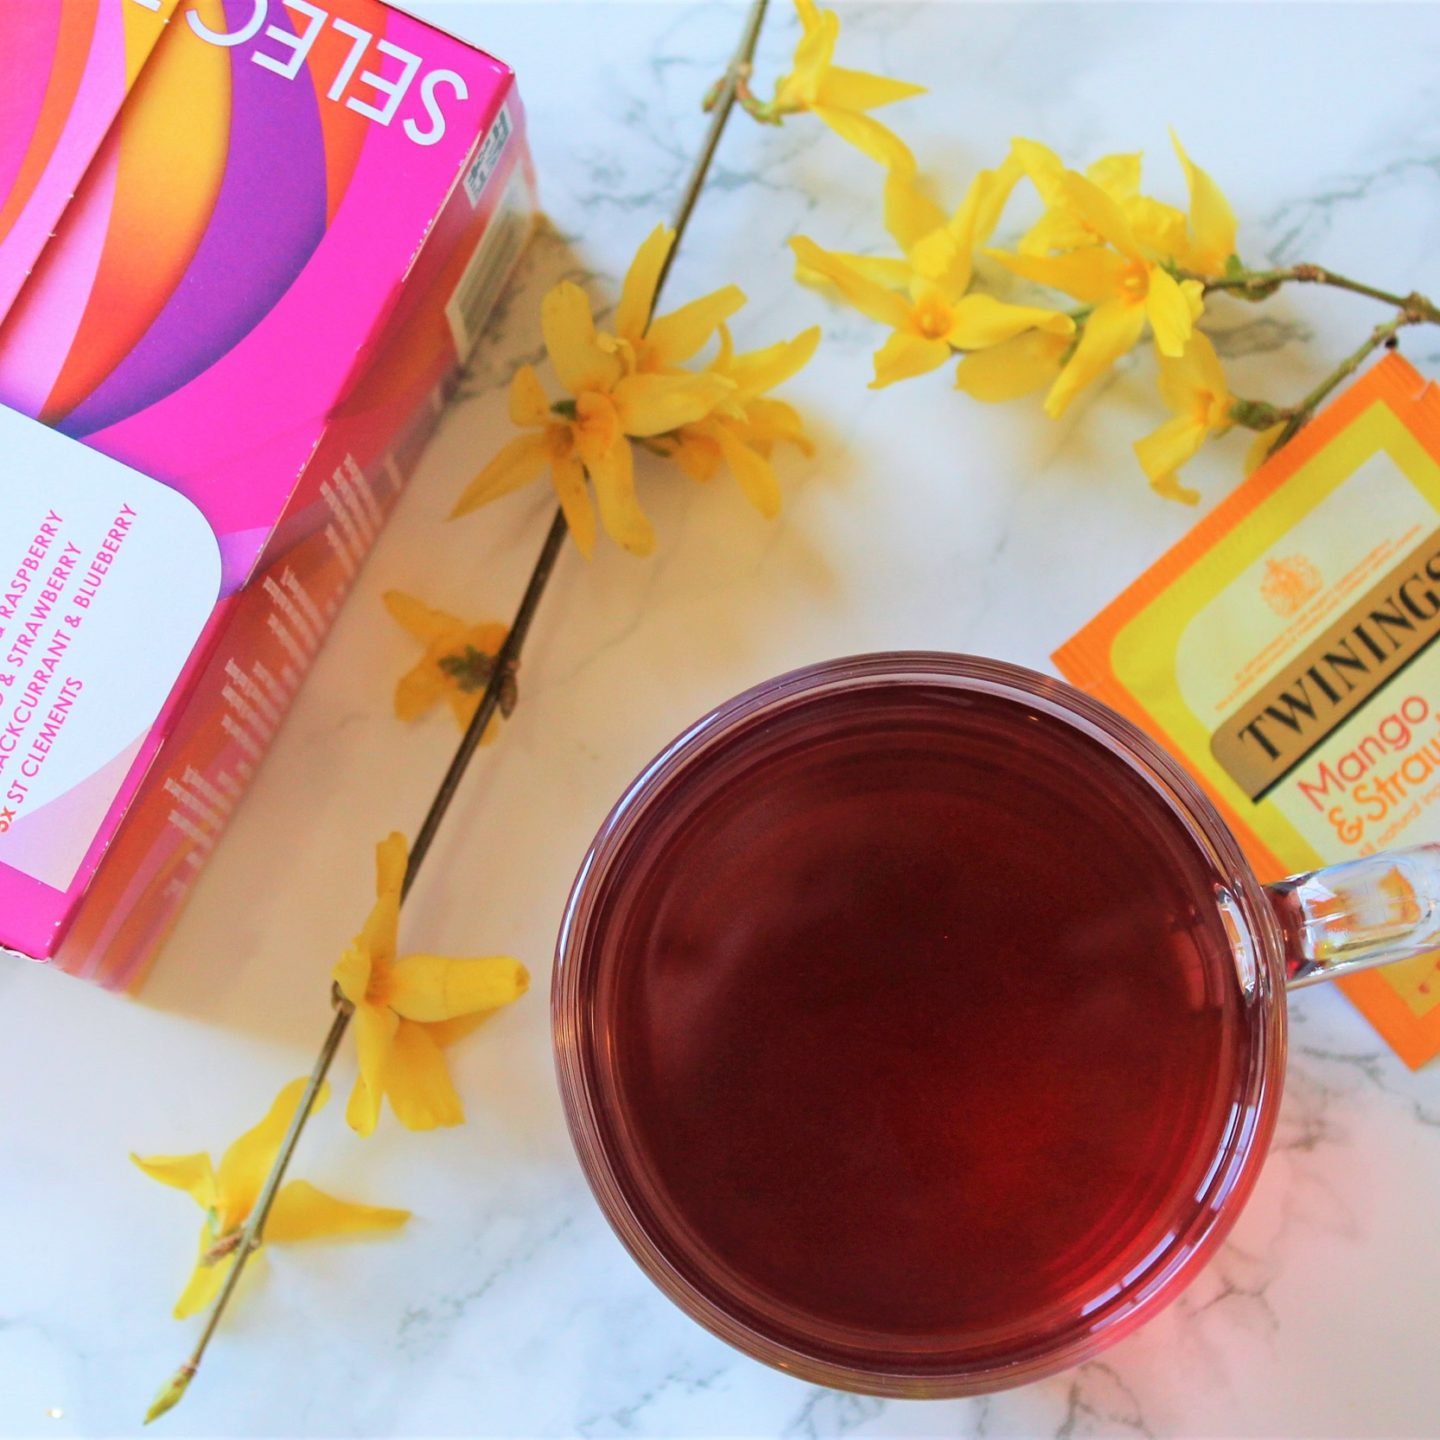 Twinings Mango & Strawberry Tea Review